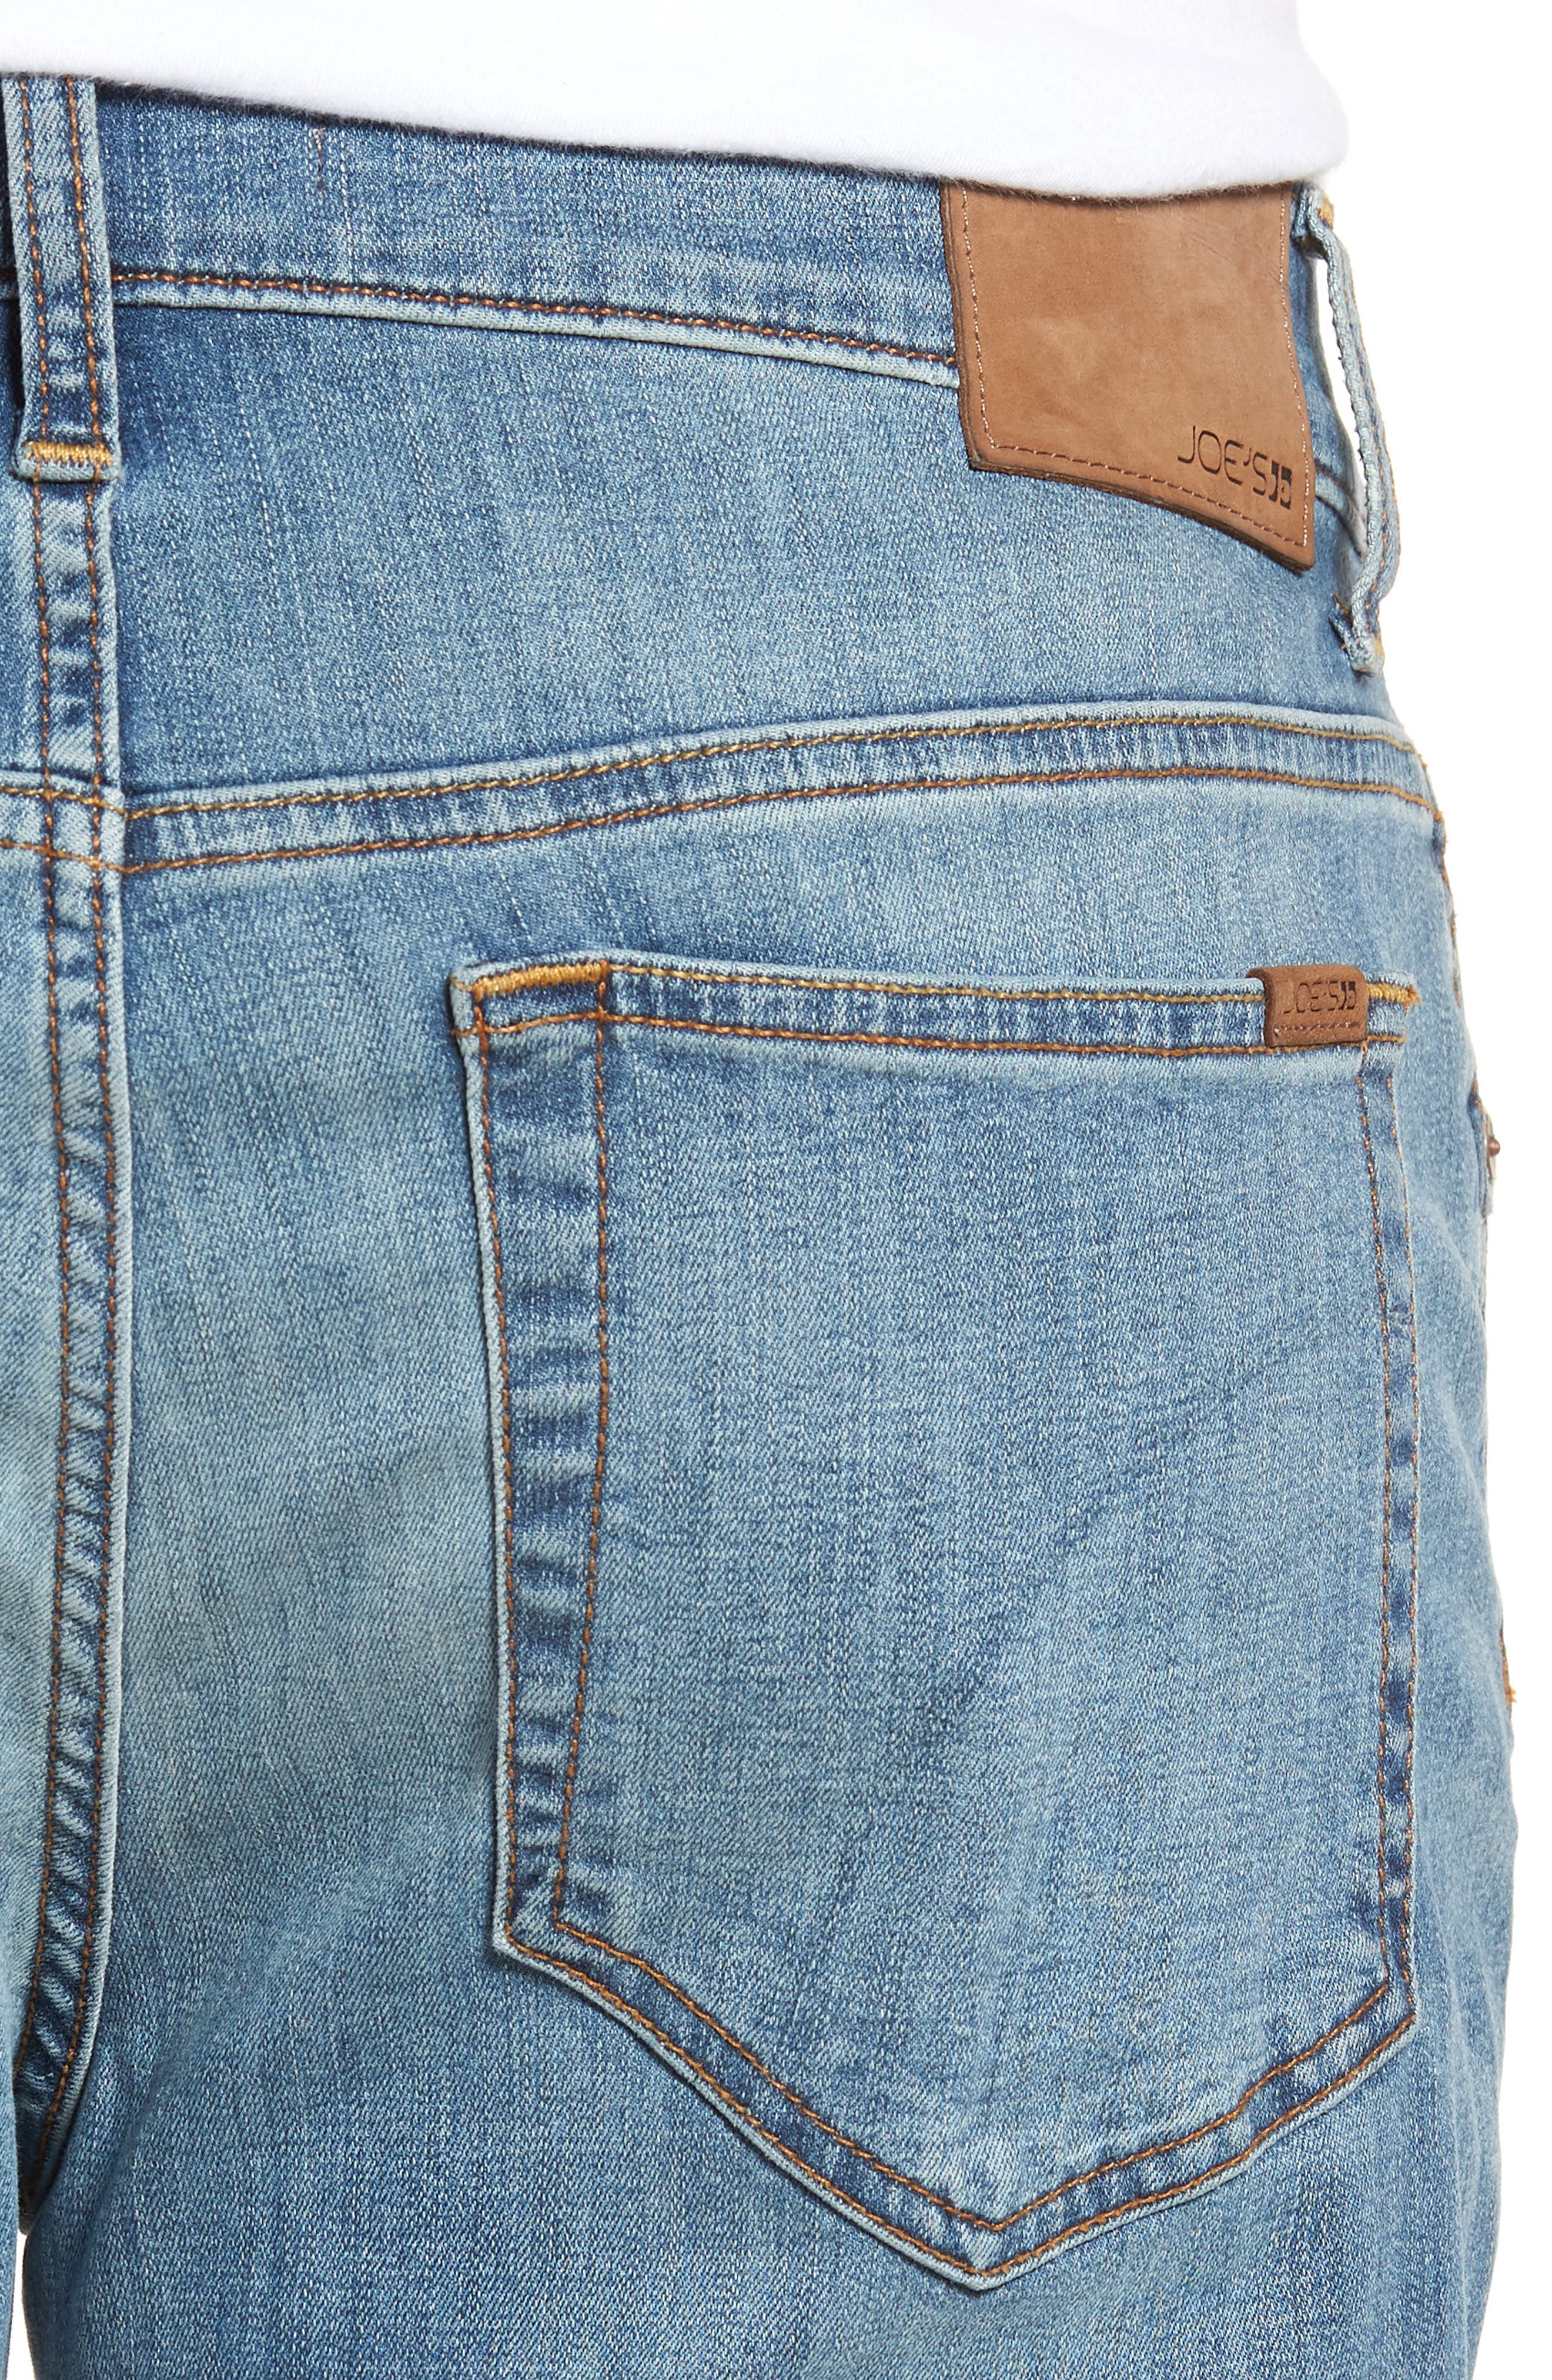 Classic Straight Fit Jeans,                             Alternate thumbnail 4, color,                             REDDING